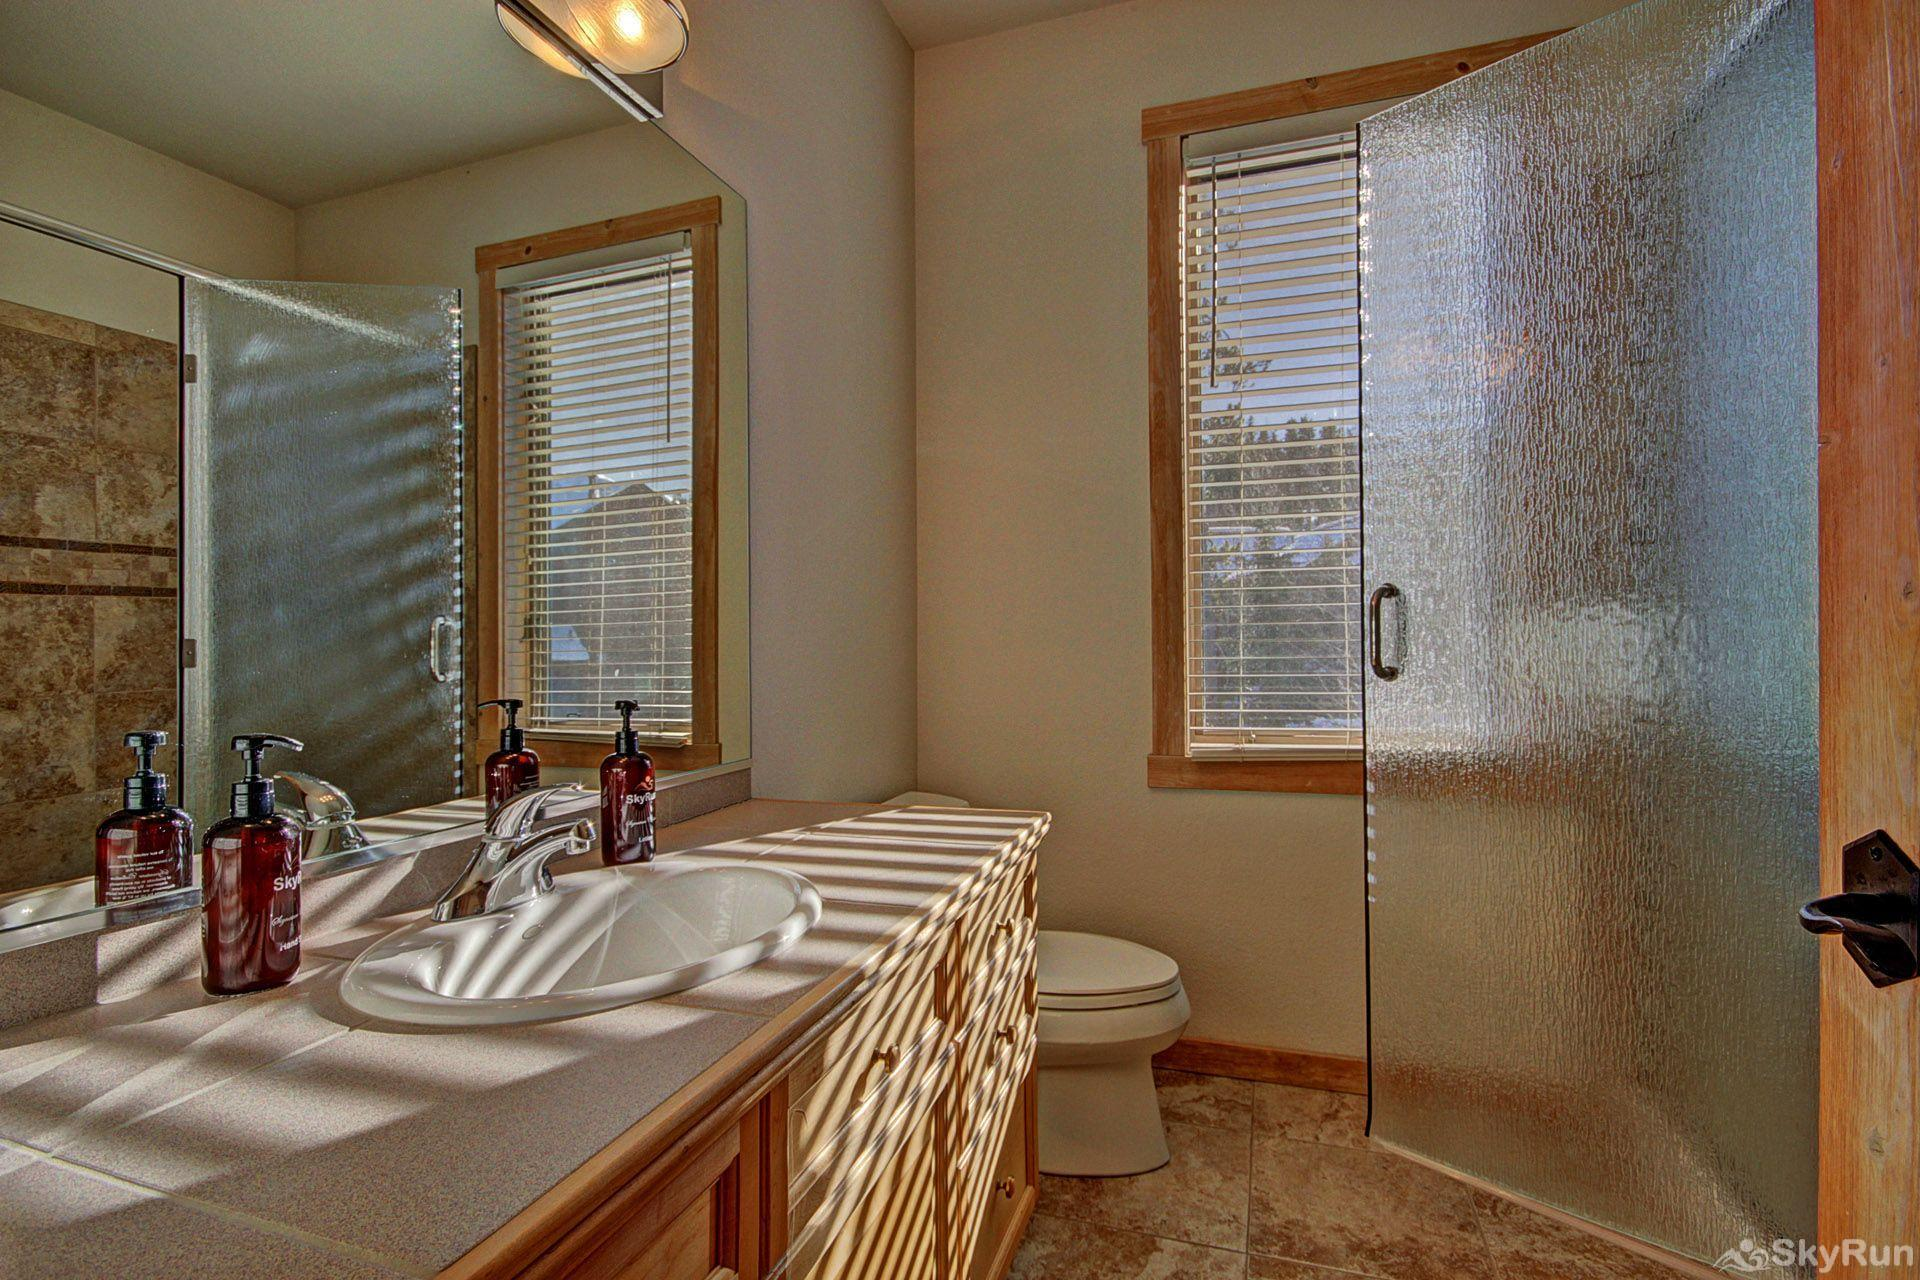 EN402 Ranch at Eagles Nest 3BR 4BA Full Guest Bathroom